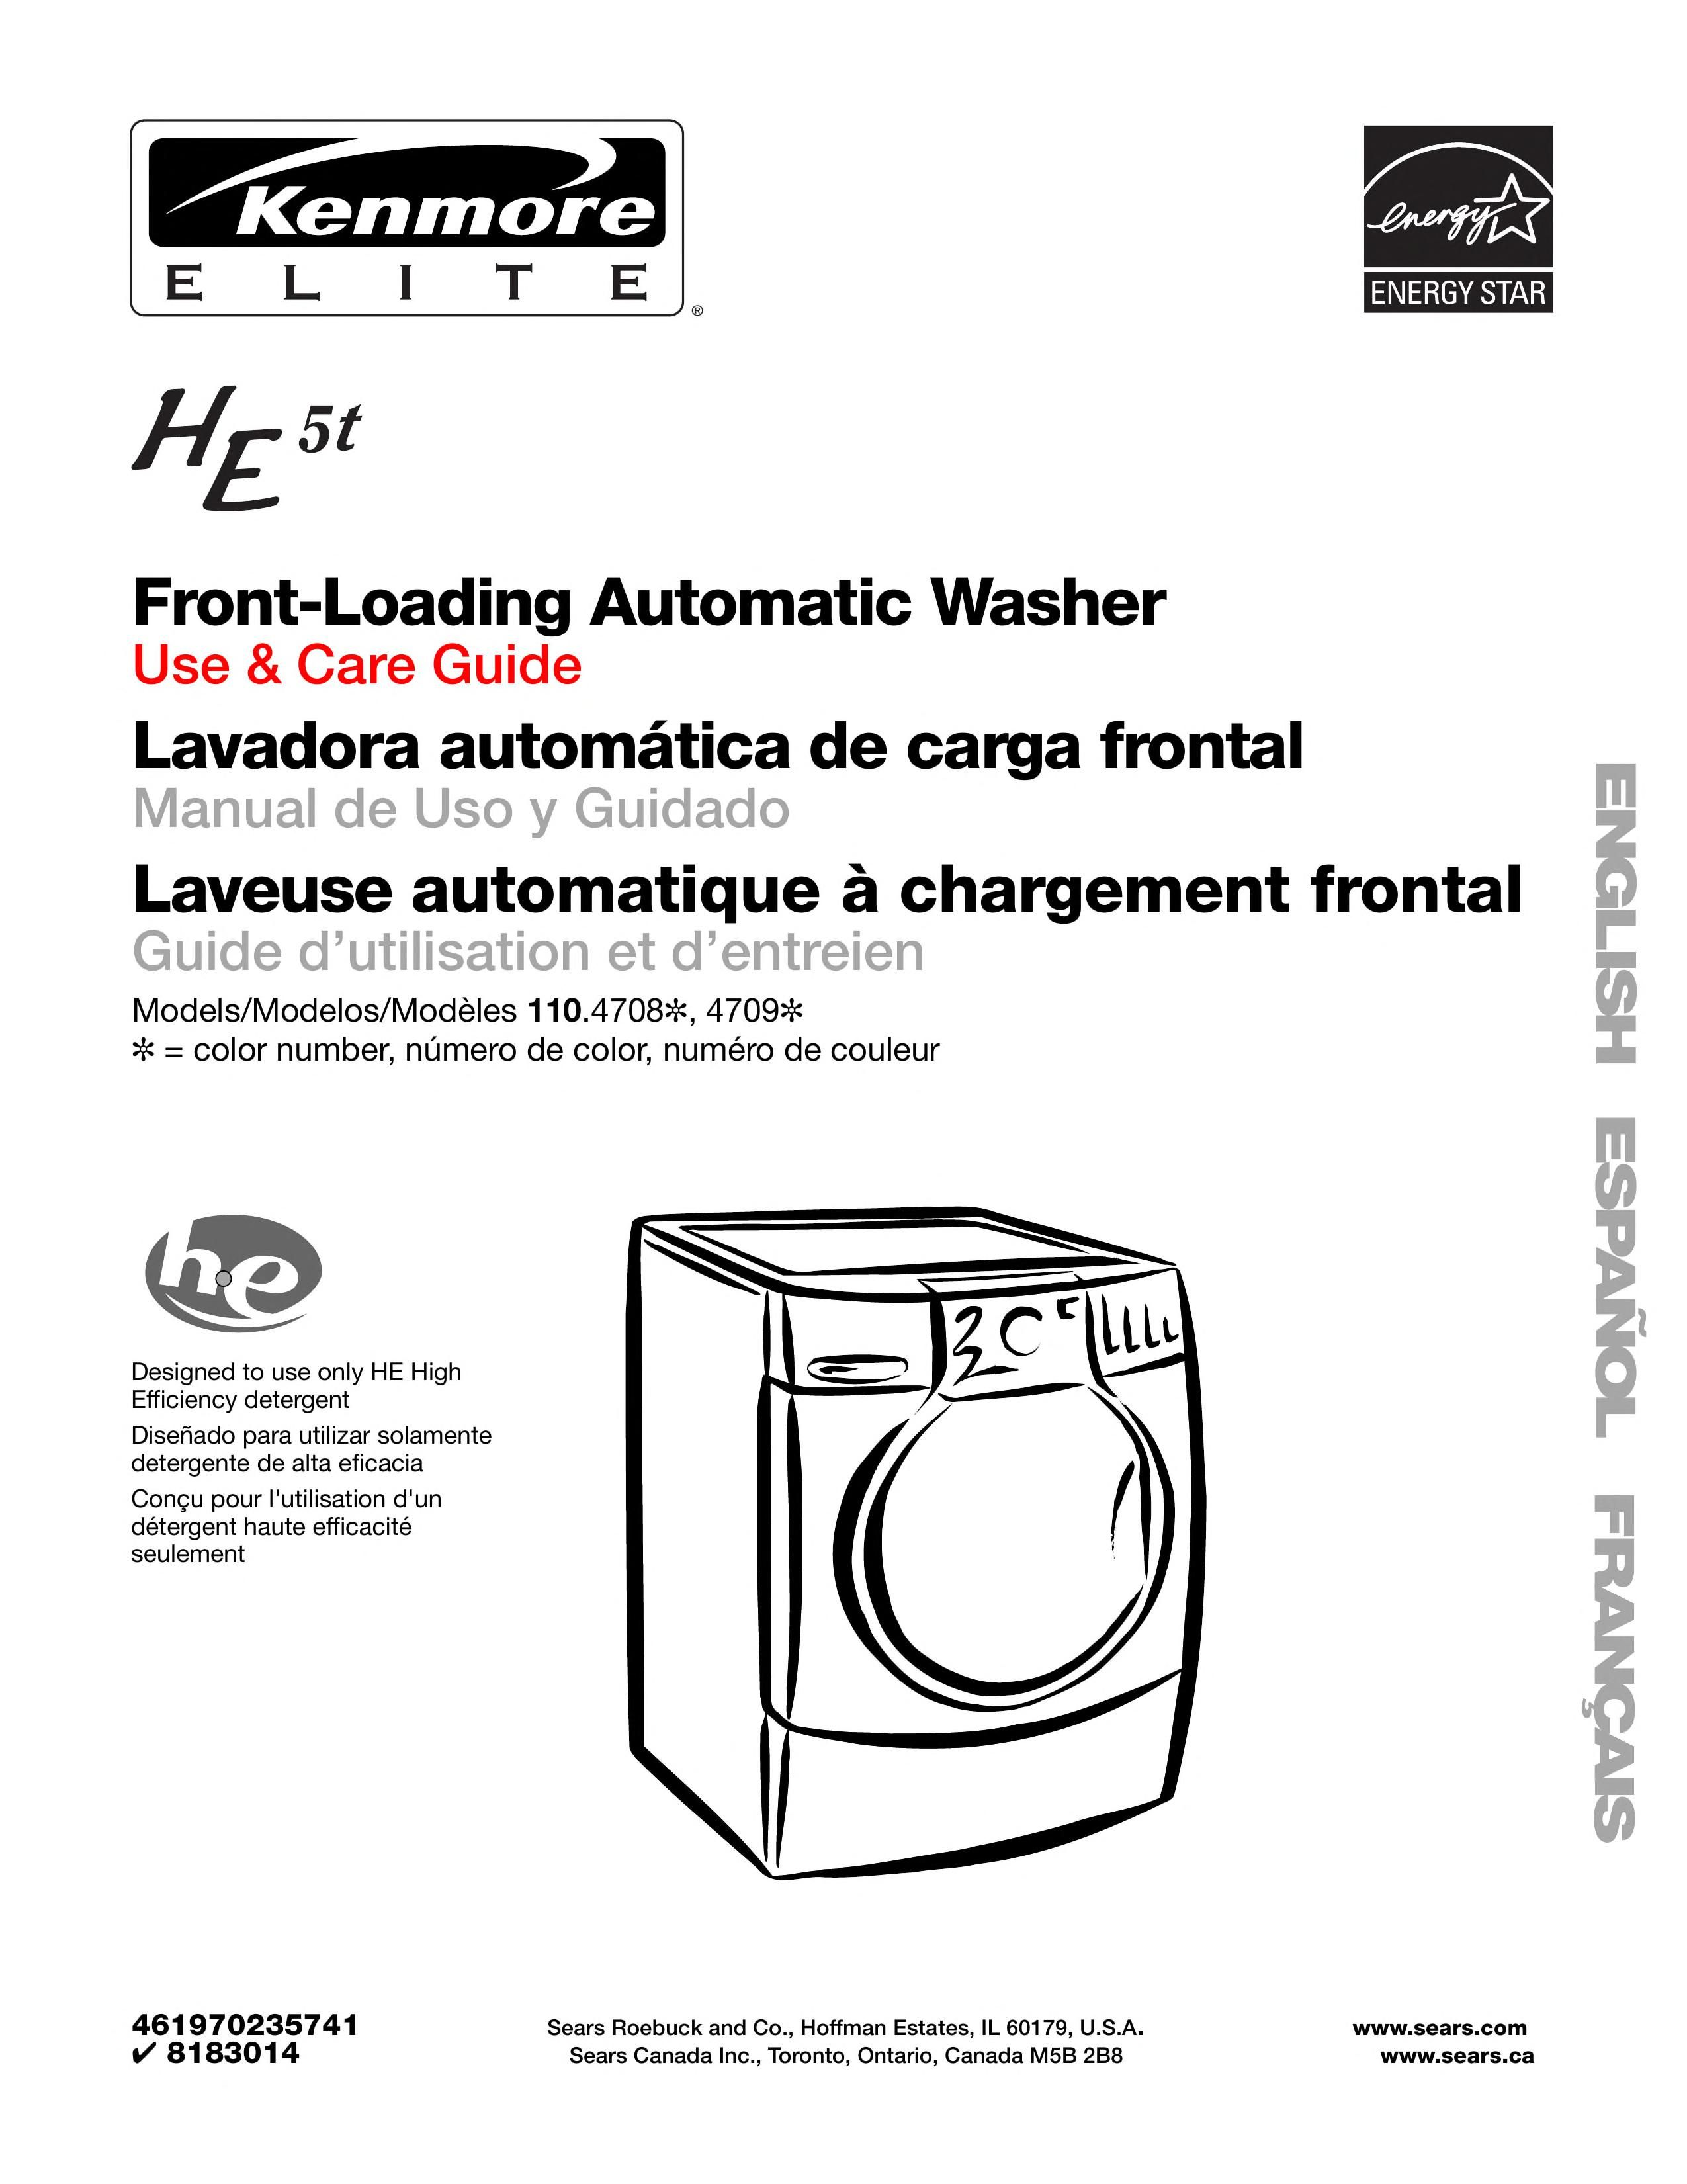 Kenmore Elite He5t Washer User Manual Kenmore Free Download Borrow And Streaming Internet Archive Kenmore Elite Kenmore User Manual